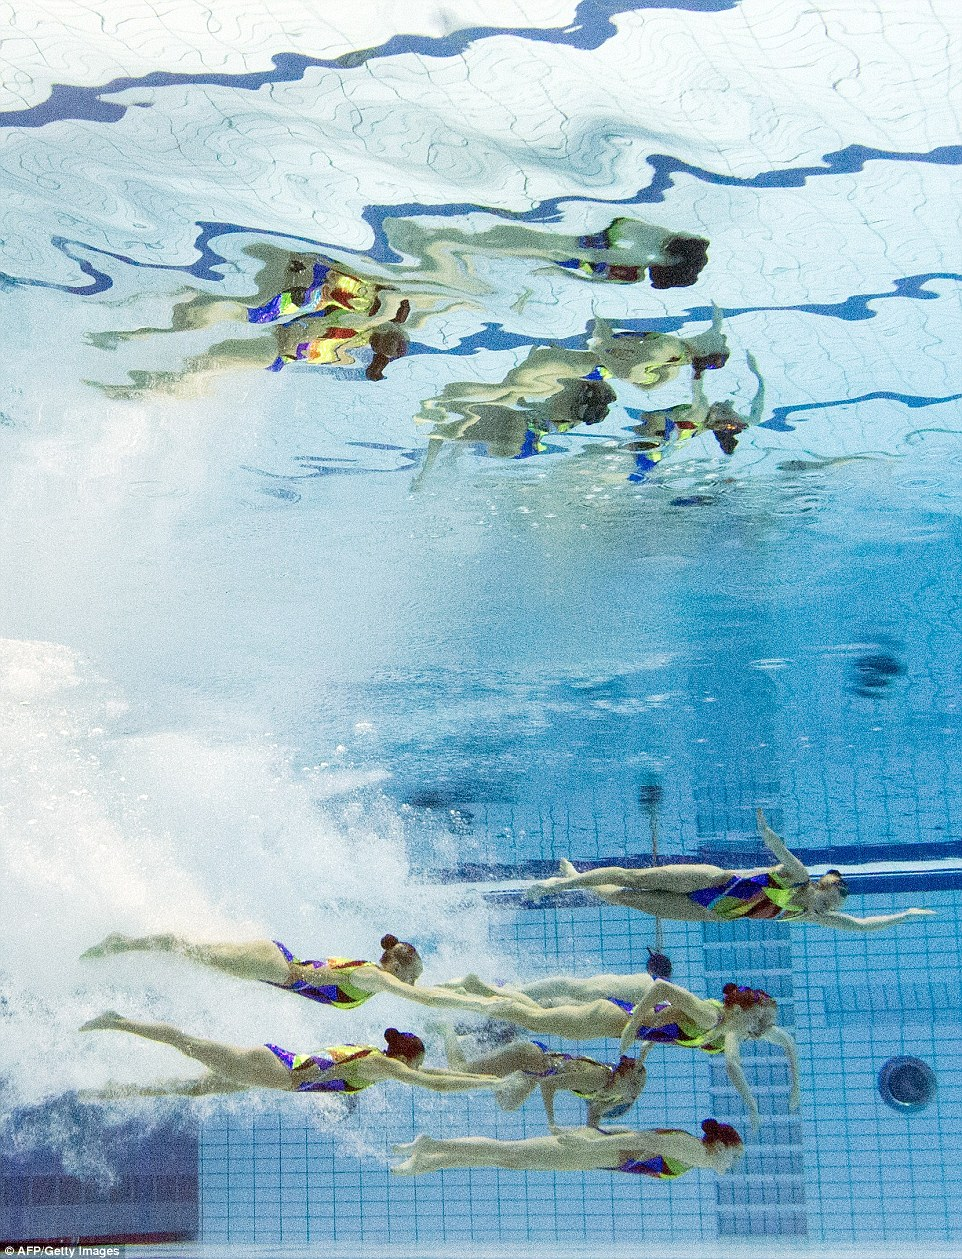 Diving deep underwater in the performance pool in Berlin, Russia's team line up another move. A wavy reflection of their manoeuvre can be seen on the surface